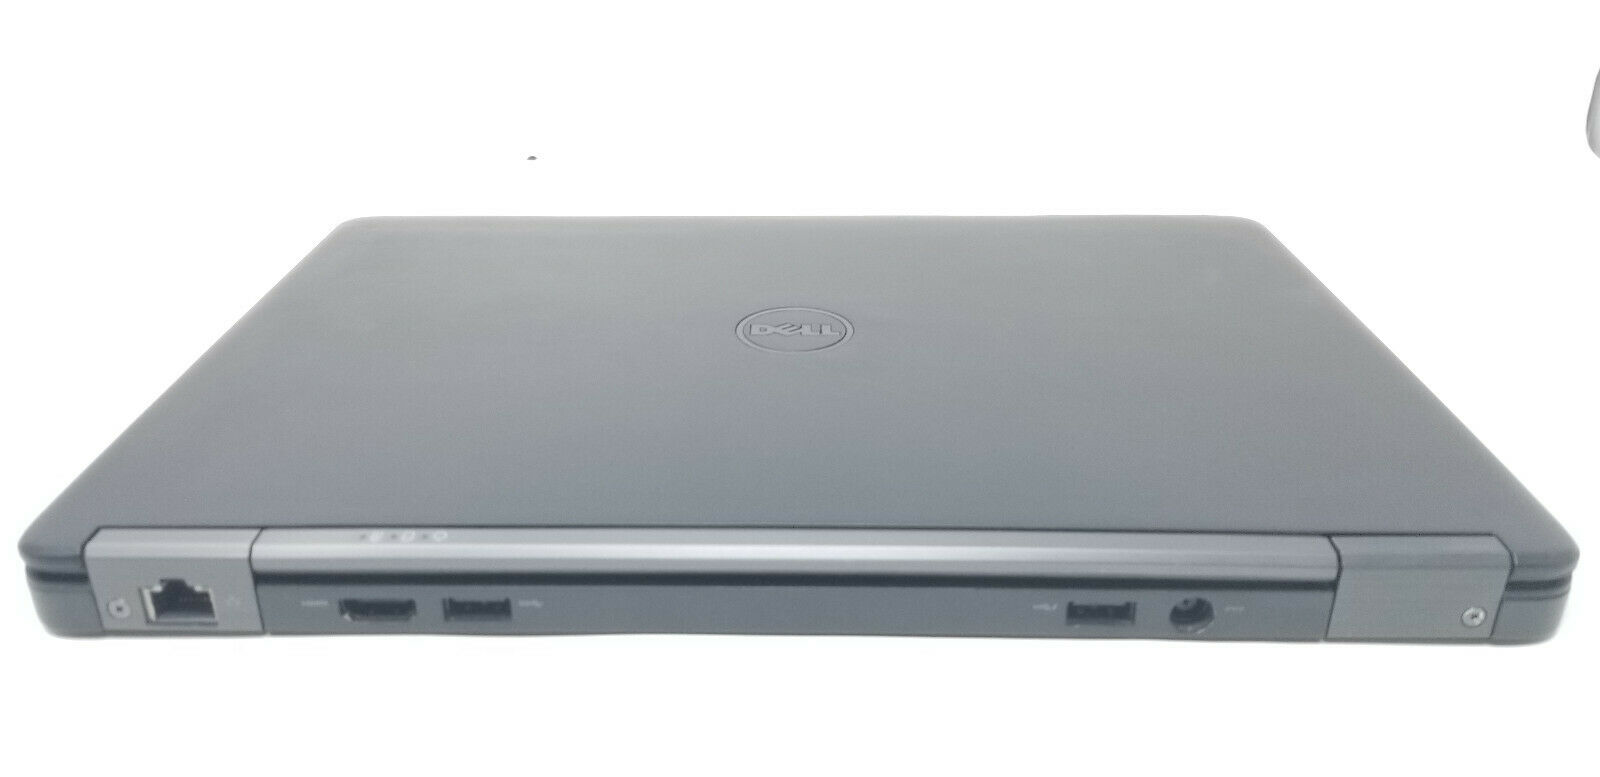 DELL LATITUDE E7250 CORE I5 5300U RAM 4GB SSD 128GB